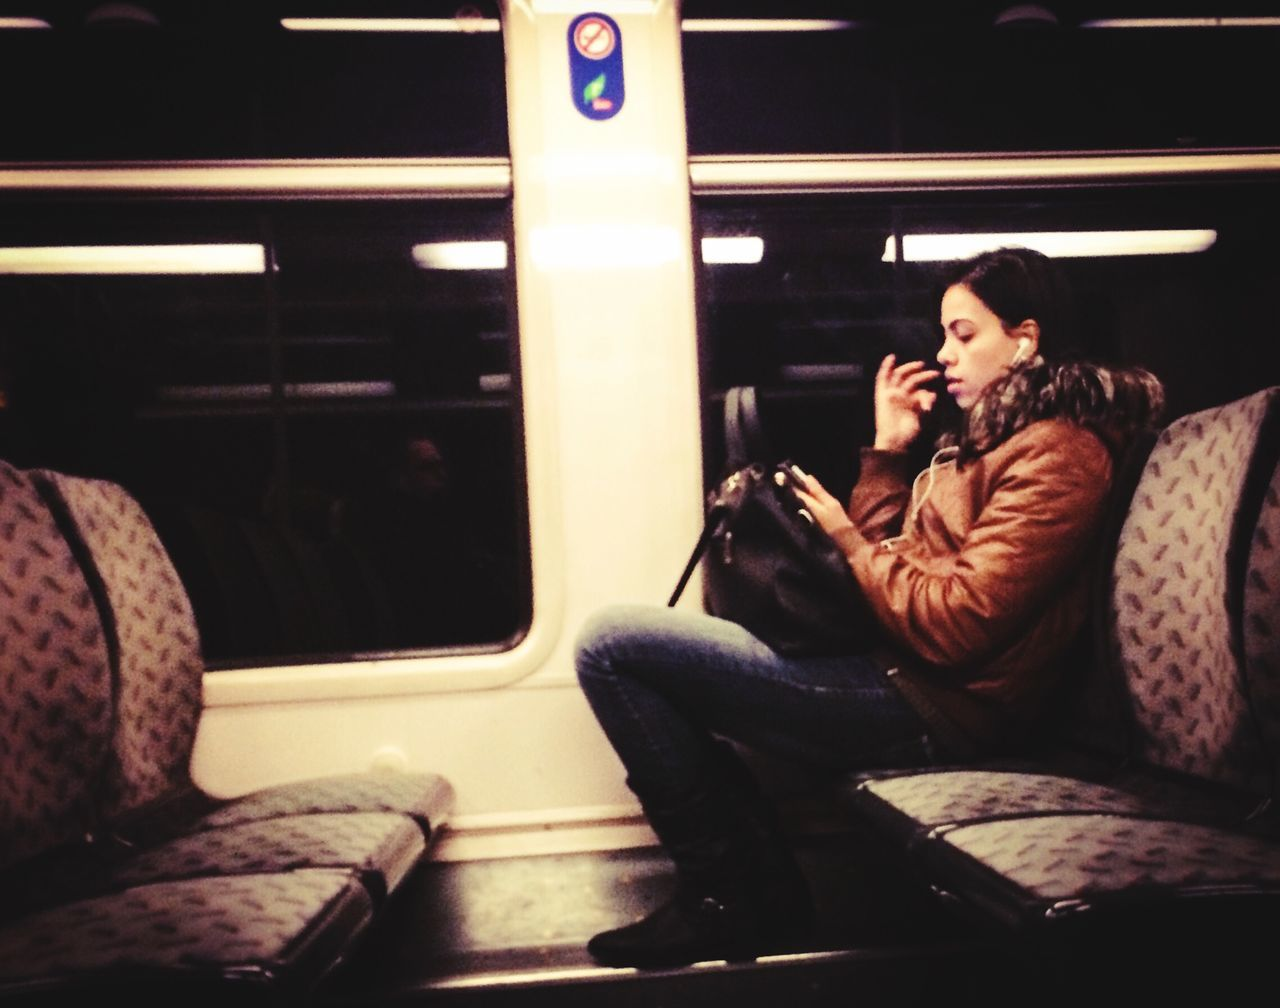 two people, sitting, wireless technology, mobile phone, real people, togetherness, transportation, young women, young adult, communication, public transportation, portable information device, women, indoors, leisure activity, technology, train - vehicle, full length, lifestyles, relaxation, young men, men, smiling, friendship, day, warm clothing, adult, people, adults only